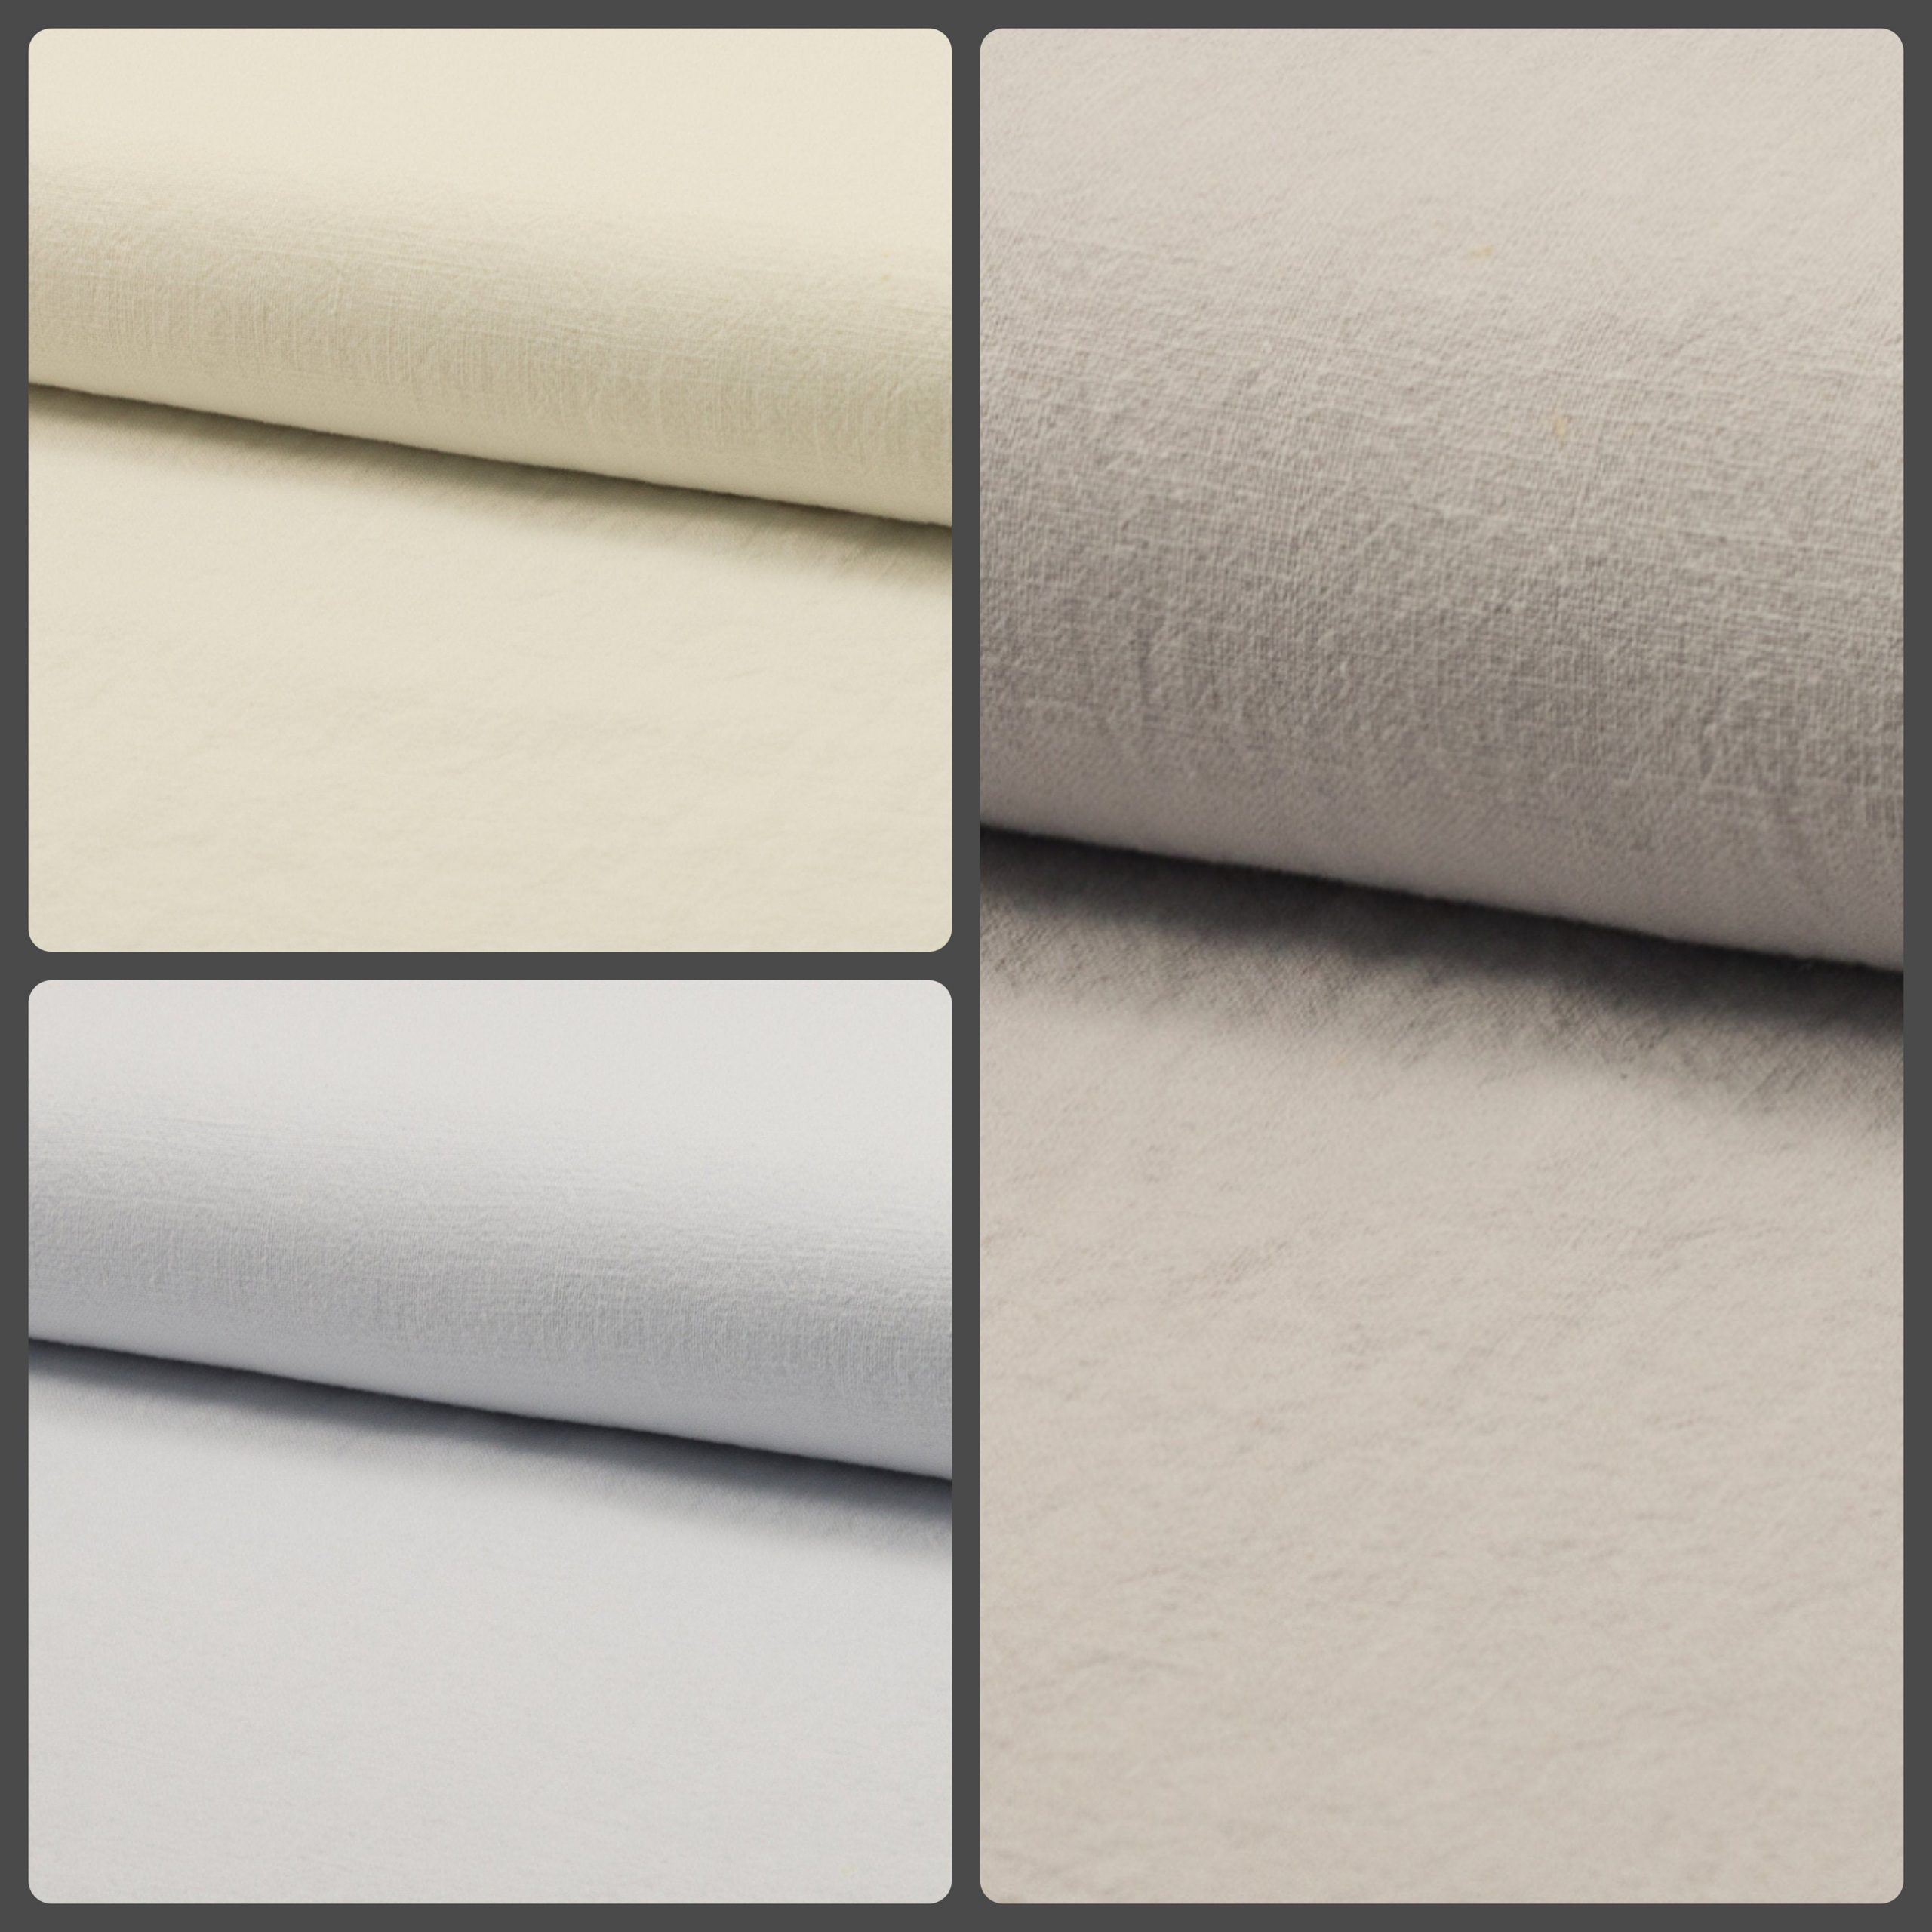 Stone Washed Pure Plain Linen Fabric Material – 100% Linens home decor bedding clothes curtains – 140cm wide – Cream, White, Silver Grey